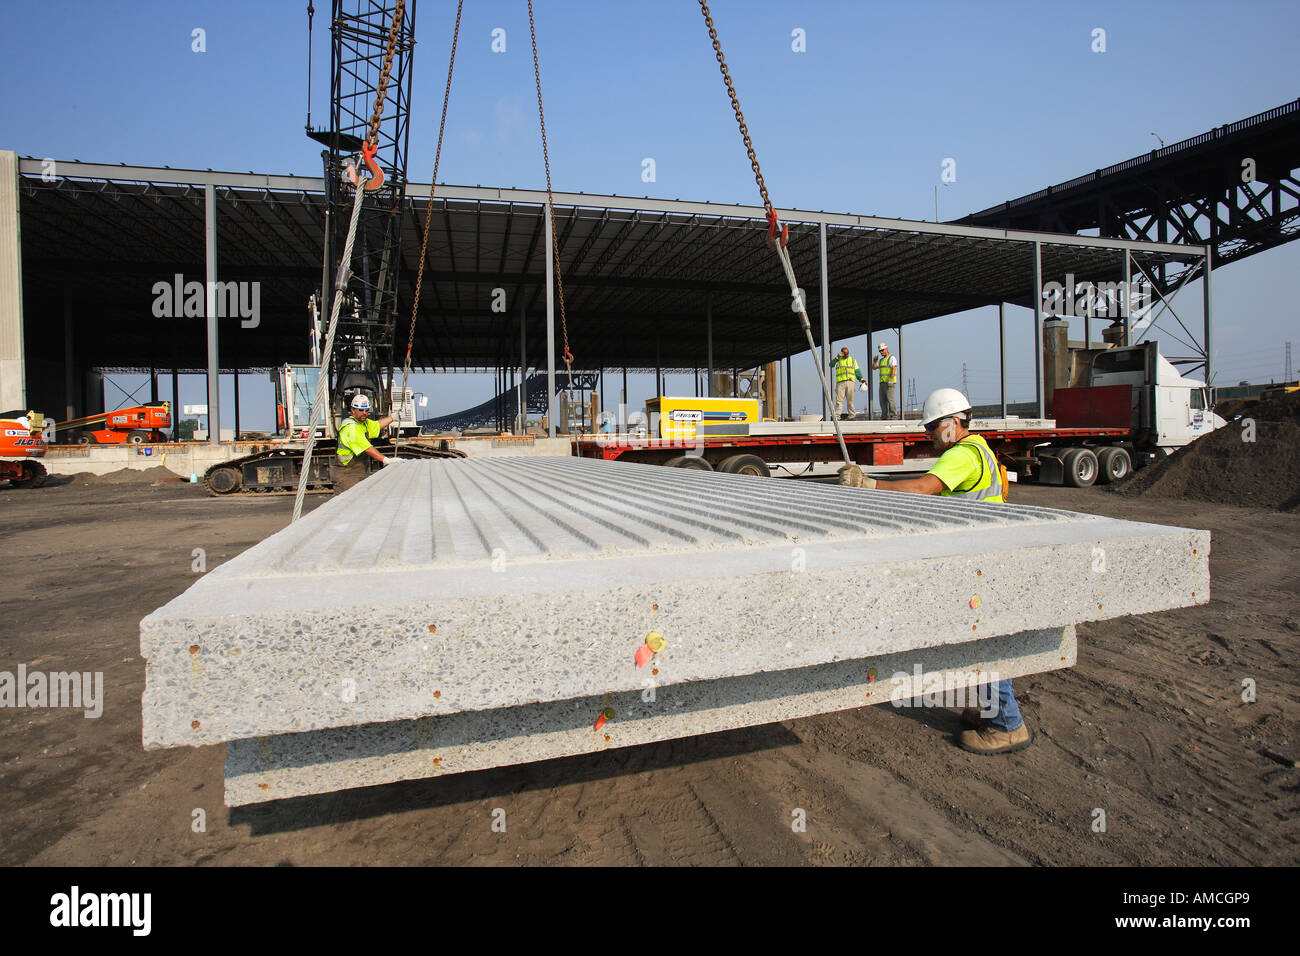 Warehouse Construction Using Prefabricated Concrete Wall Sections - Stock Image